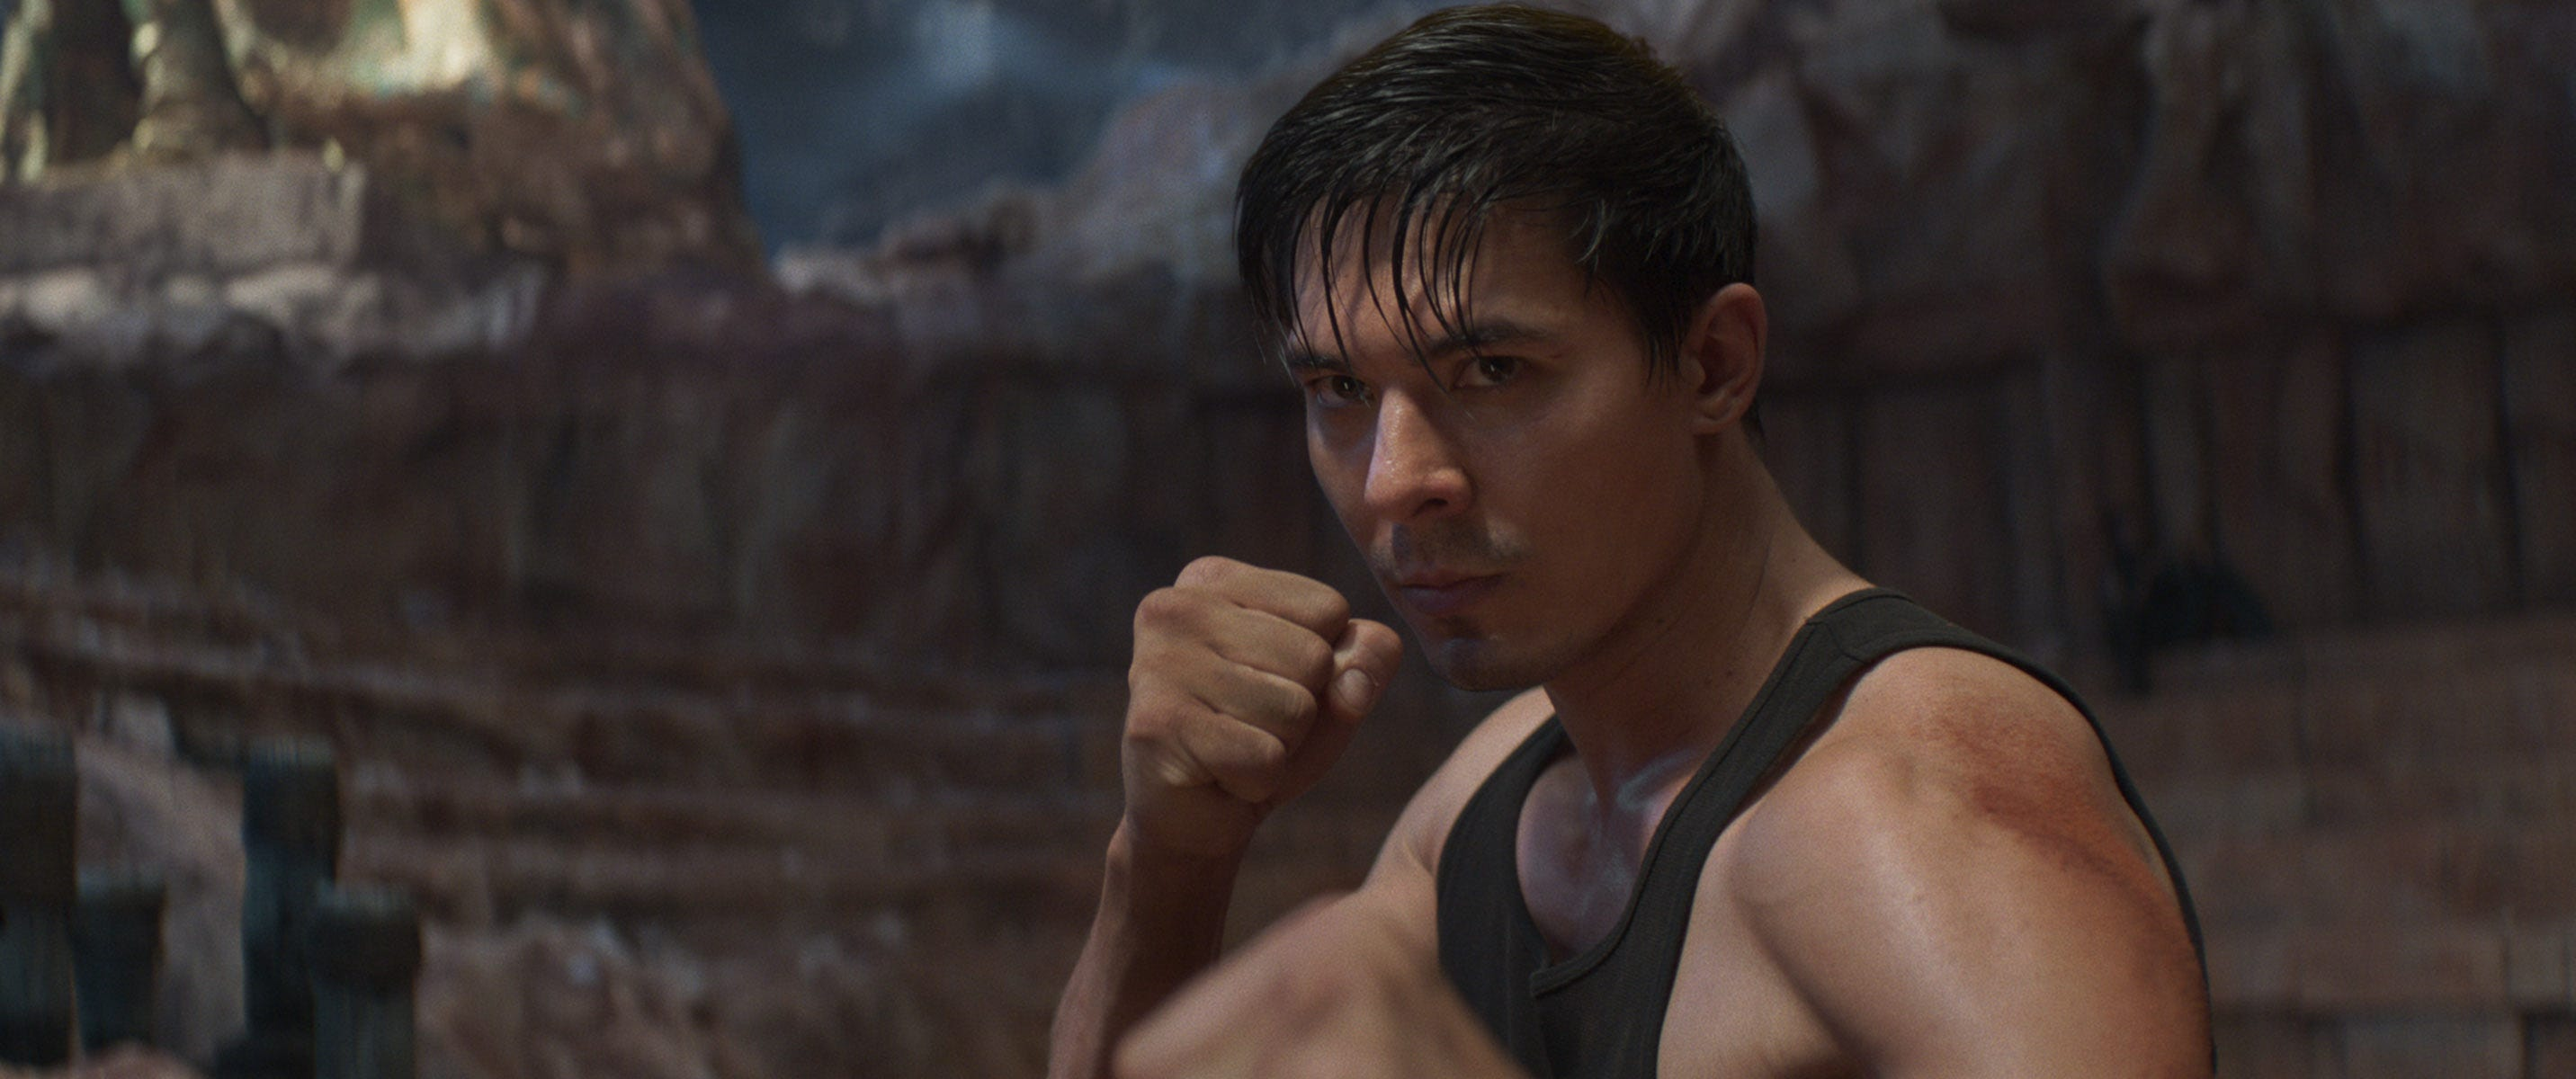 Mortal Kombat  star Lewis Tan talks disappointing  Deadpool  death and ultimate Cole Young triumph